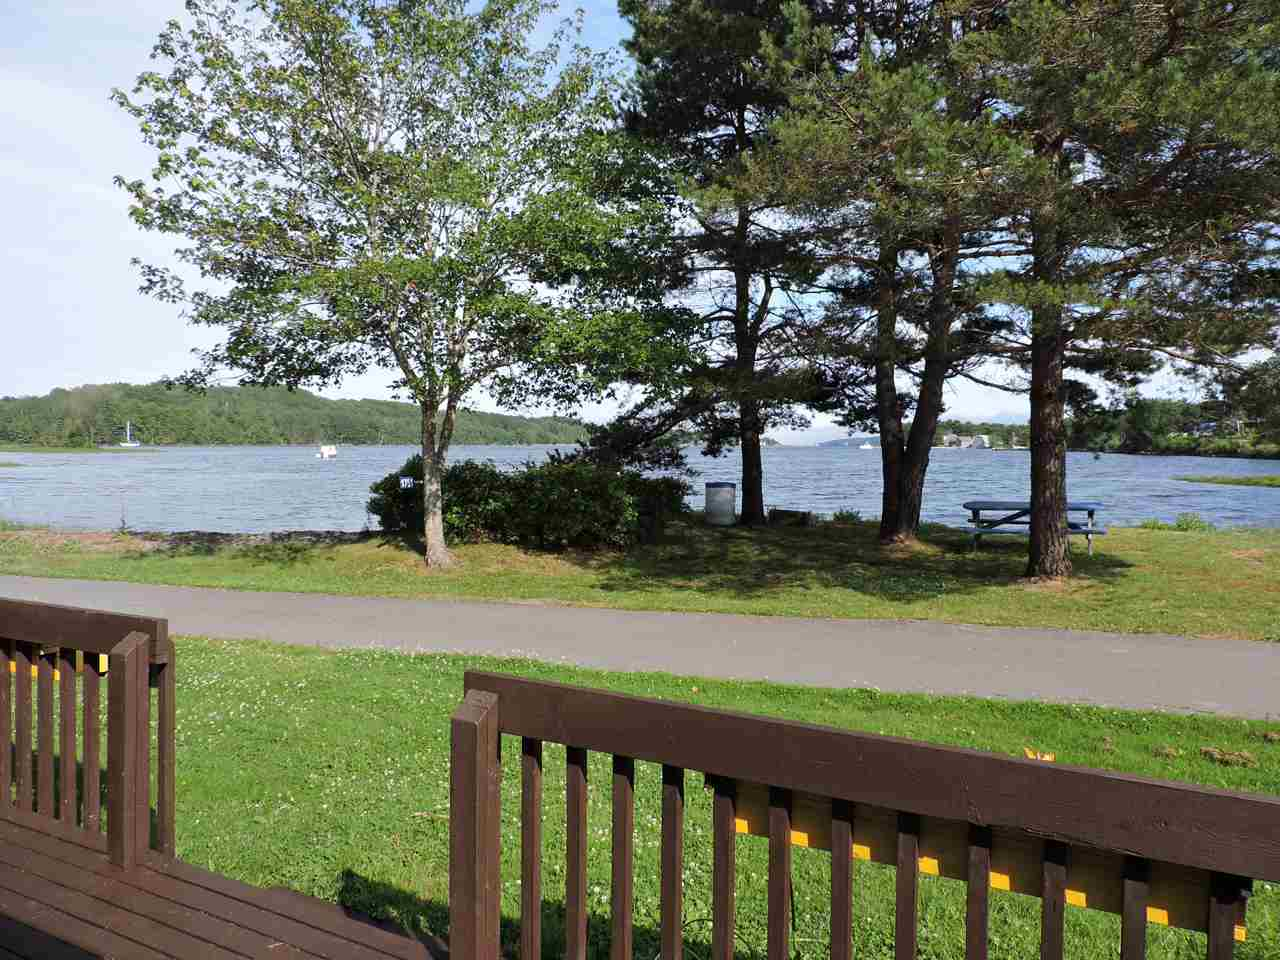 House for rent at 1751 NS-331, Pleasantville, NS. This is the patio terrace with water view, lawn and deck.